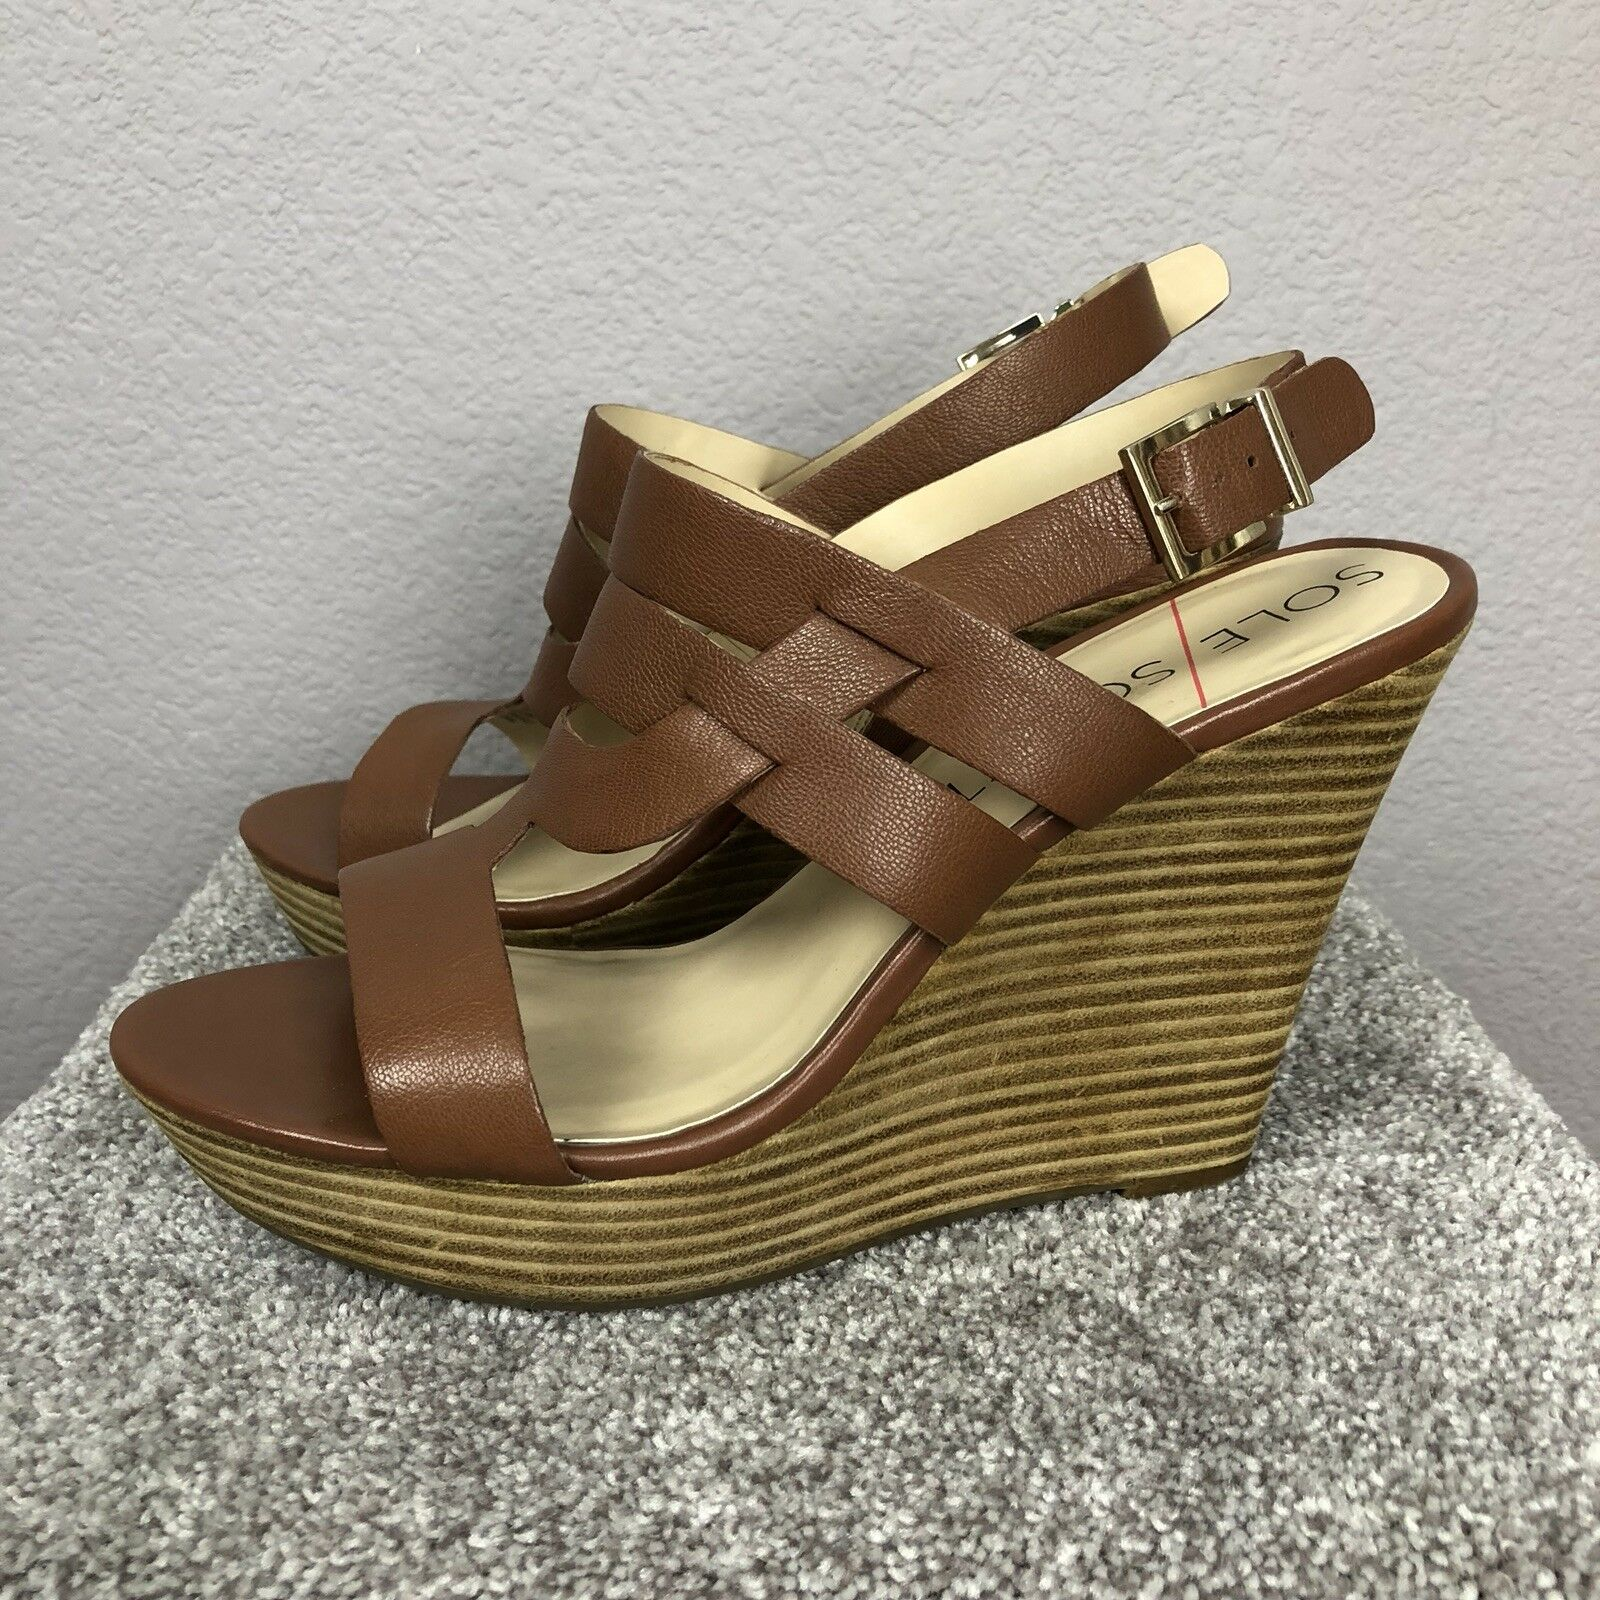 Sole Society Women's Platform Sandals Brown Leather Size 10M Casual Tall JENNY